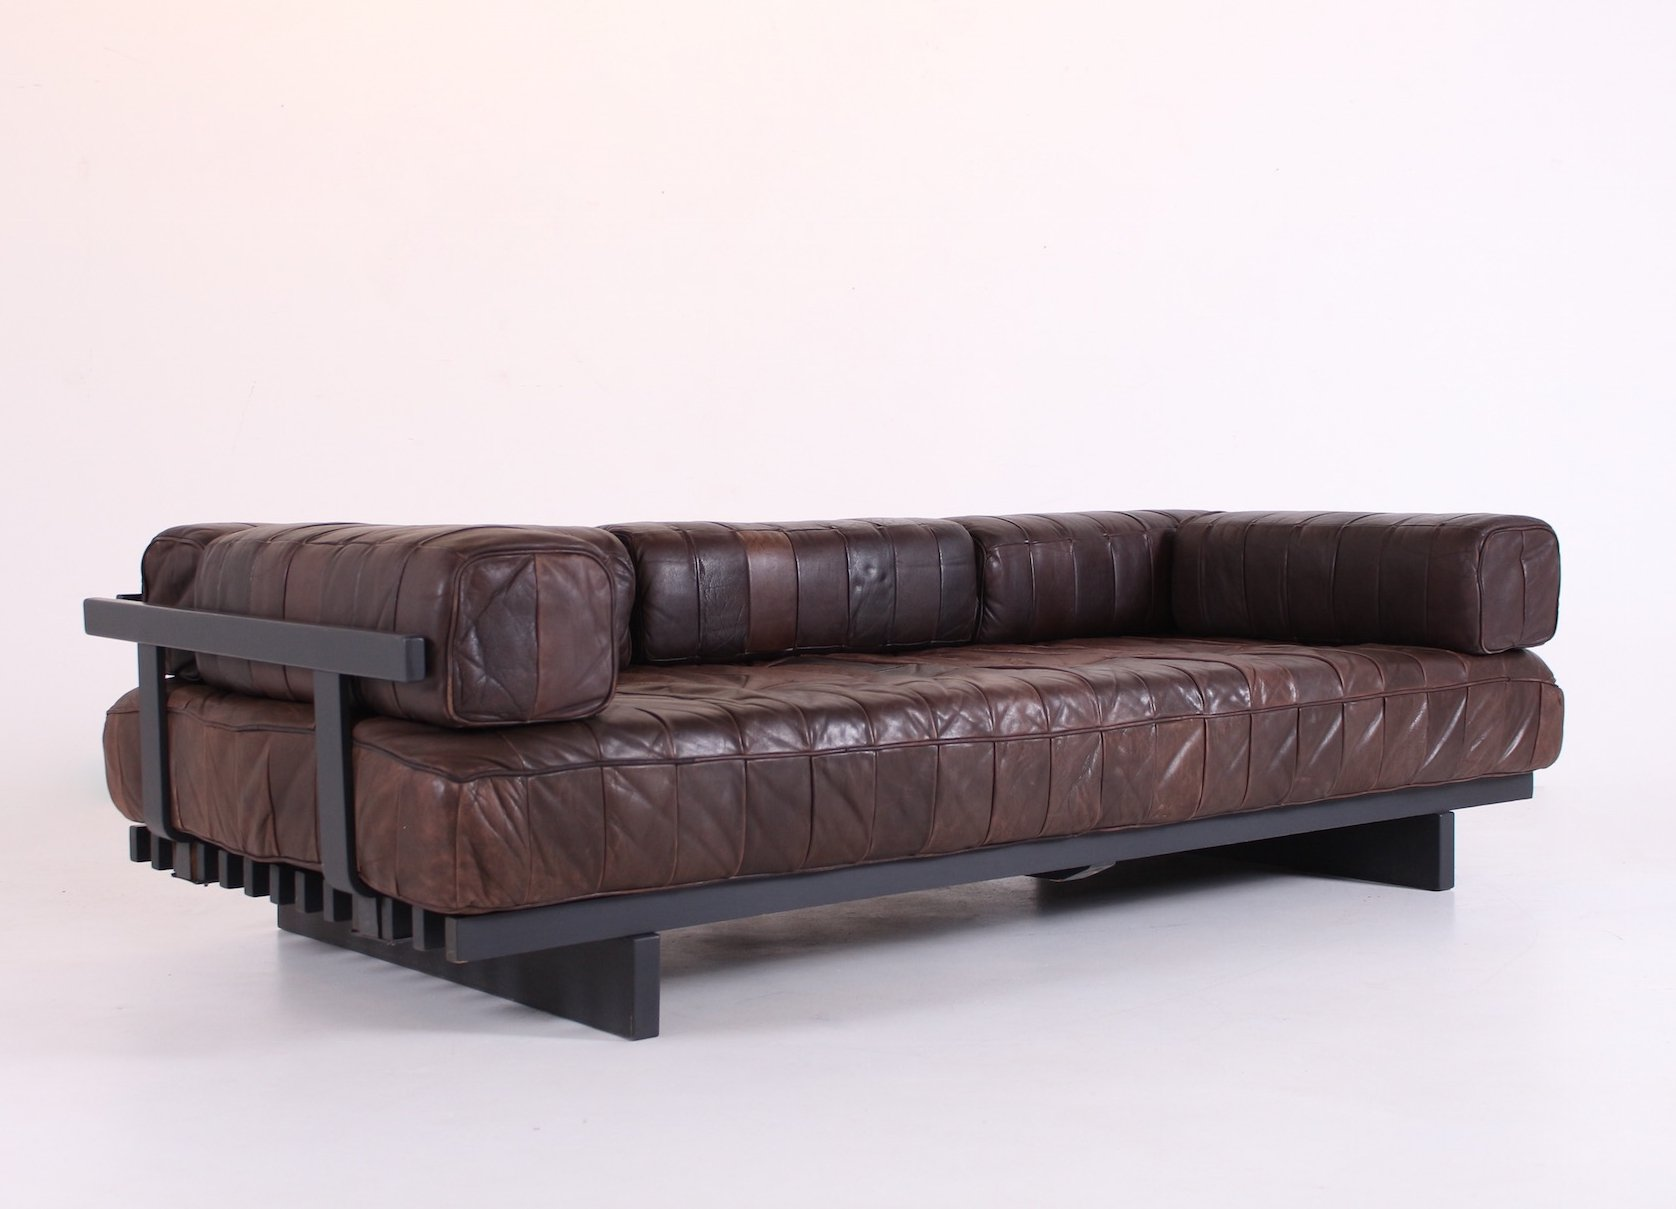 De Sede Patchwork.De Sede Patchwork Leather Modulable Ds 80 Daybed 1970s